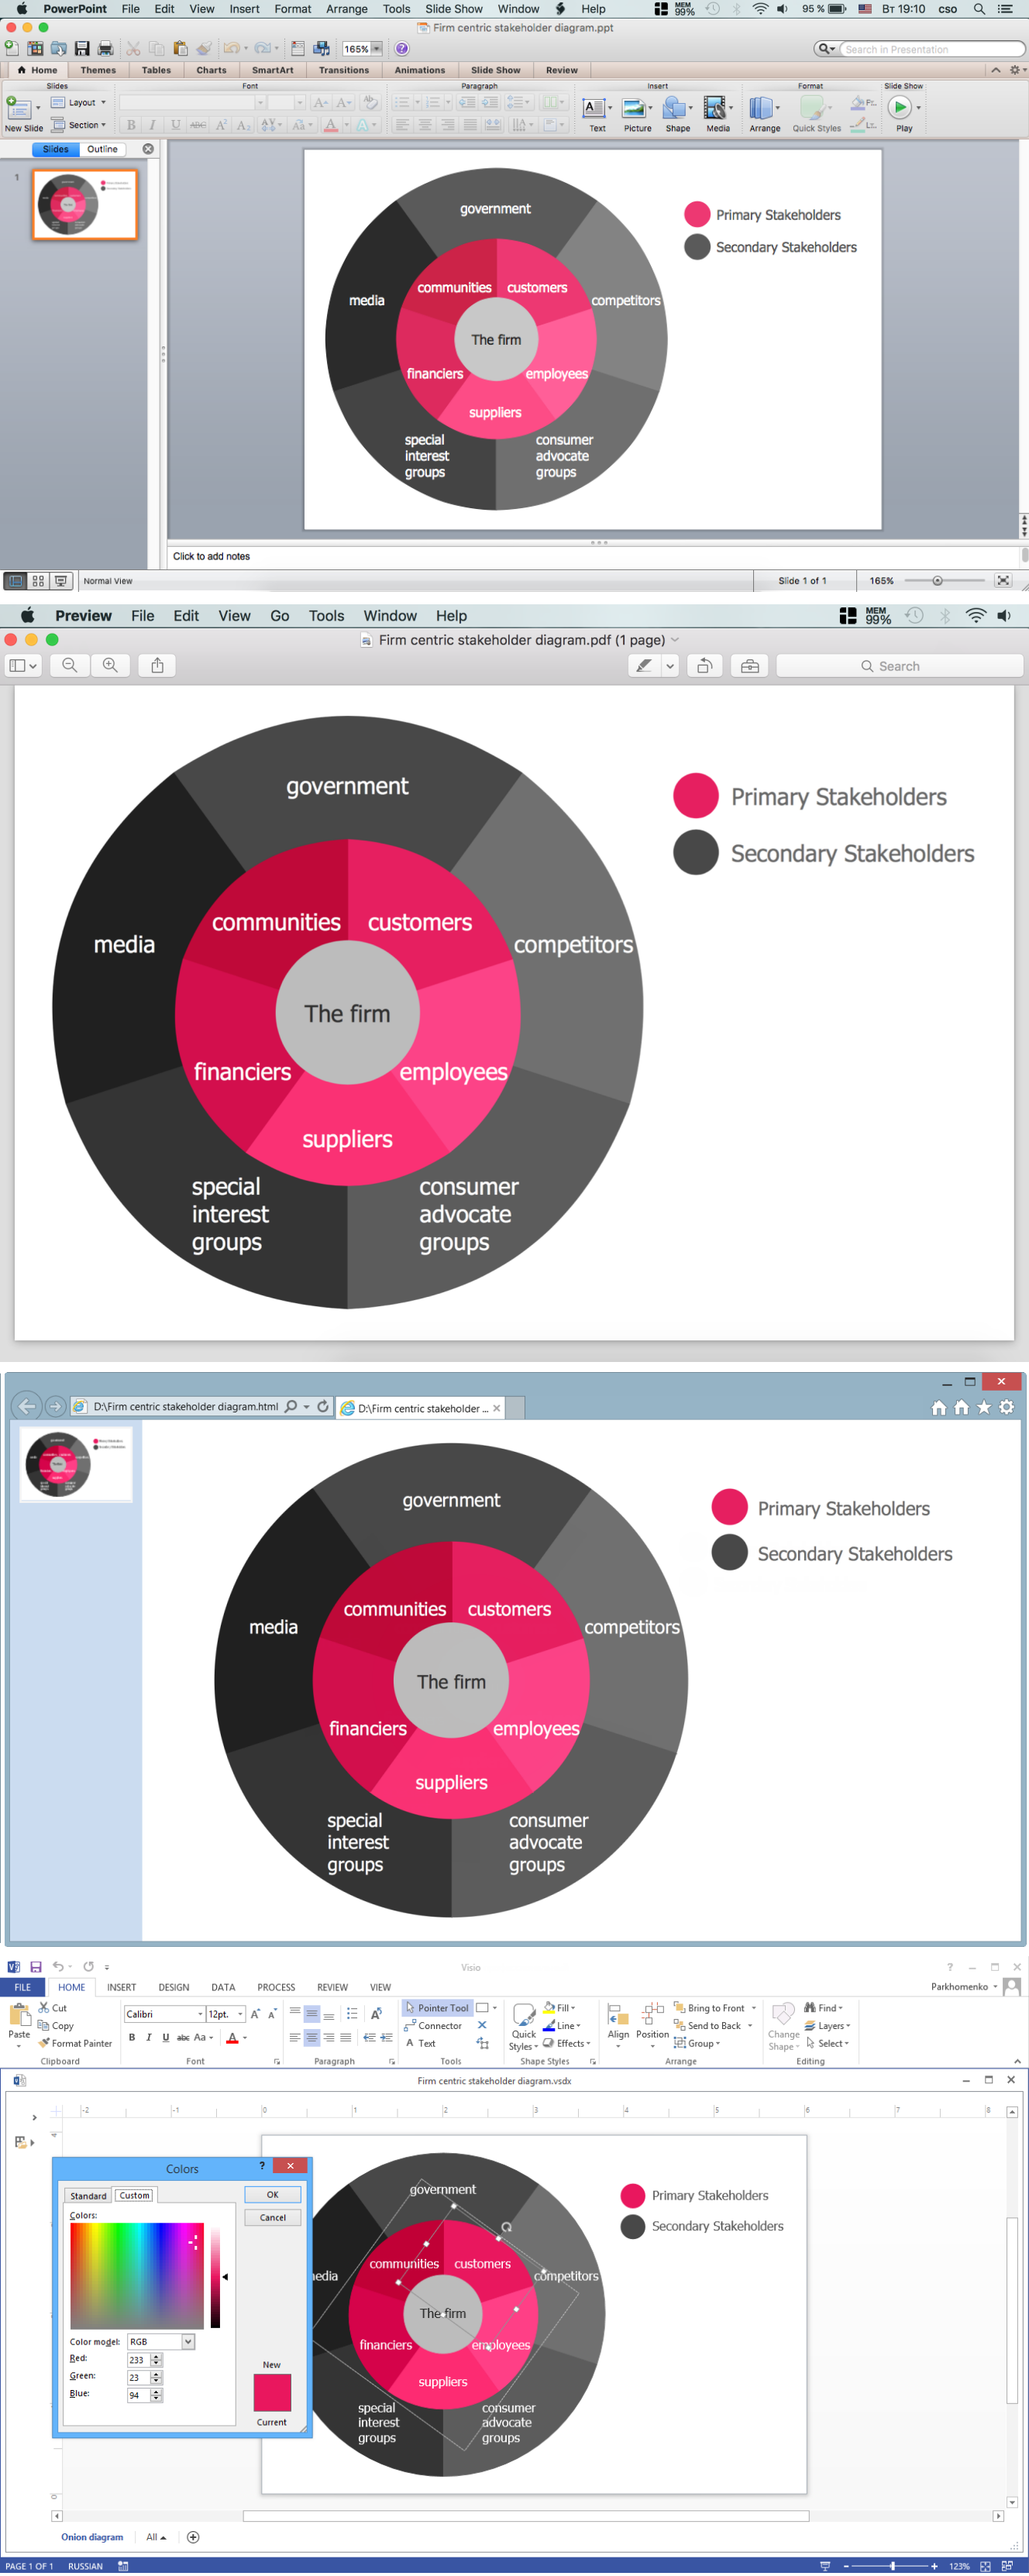 Firm Centric Stakeholder Diagram - Export to PPT, PDF, HTML, Visio